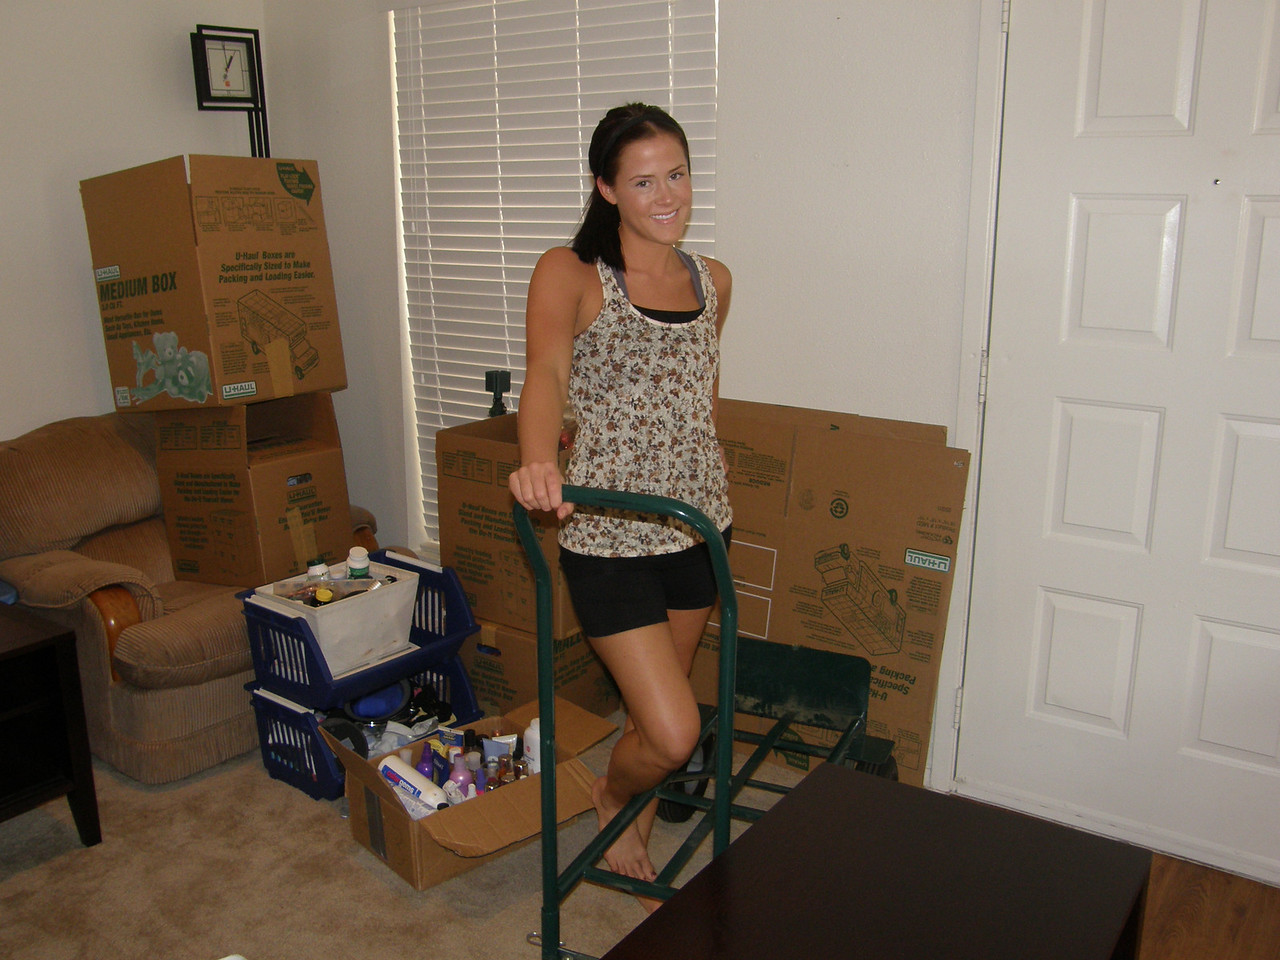 Sarah gets ready to move out.